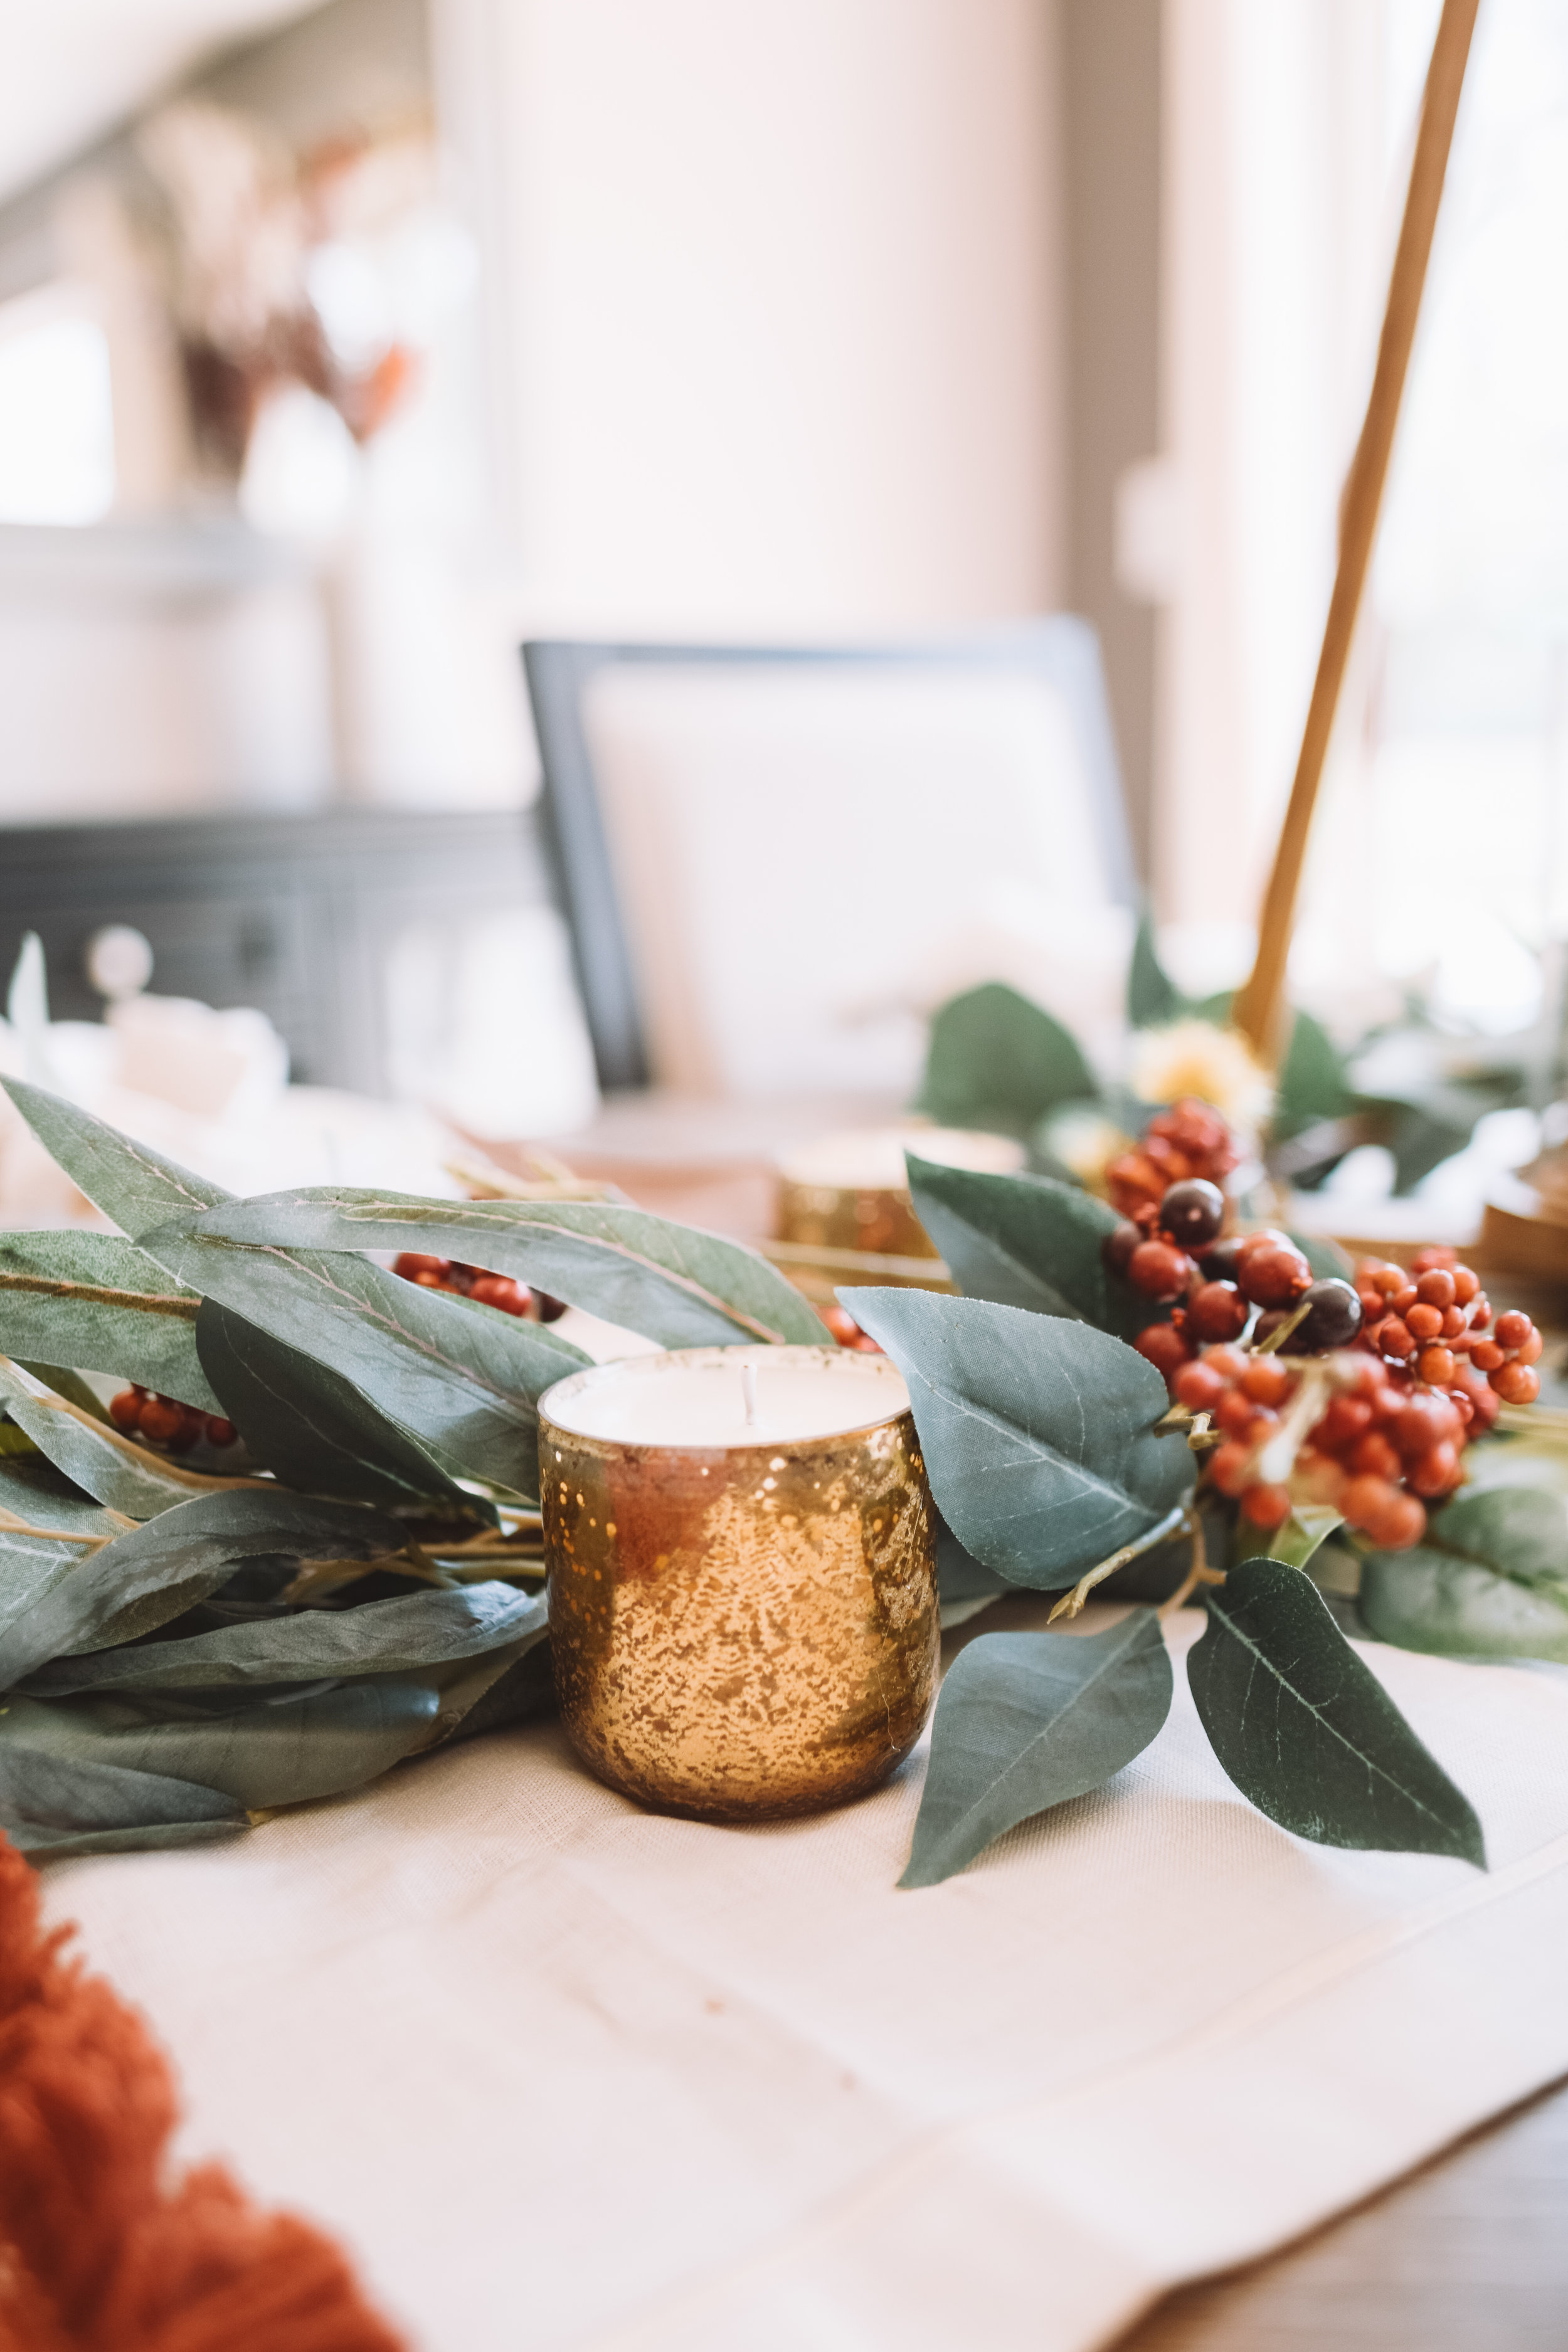 Gorgeous Simple Fall Thanksgiving Dining Tablescape Decor - The Overwhelmed Mommy Blogger